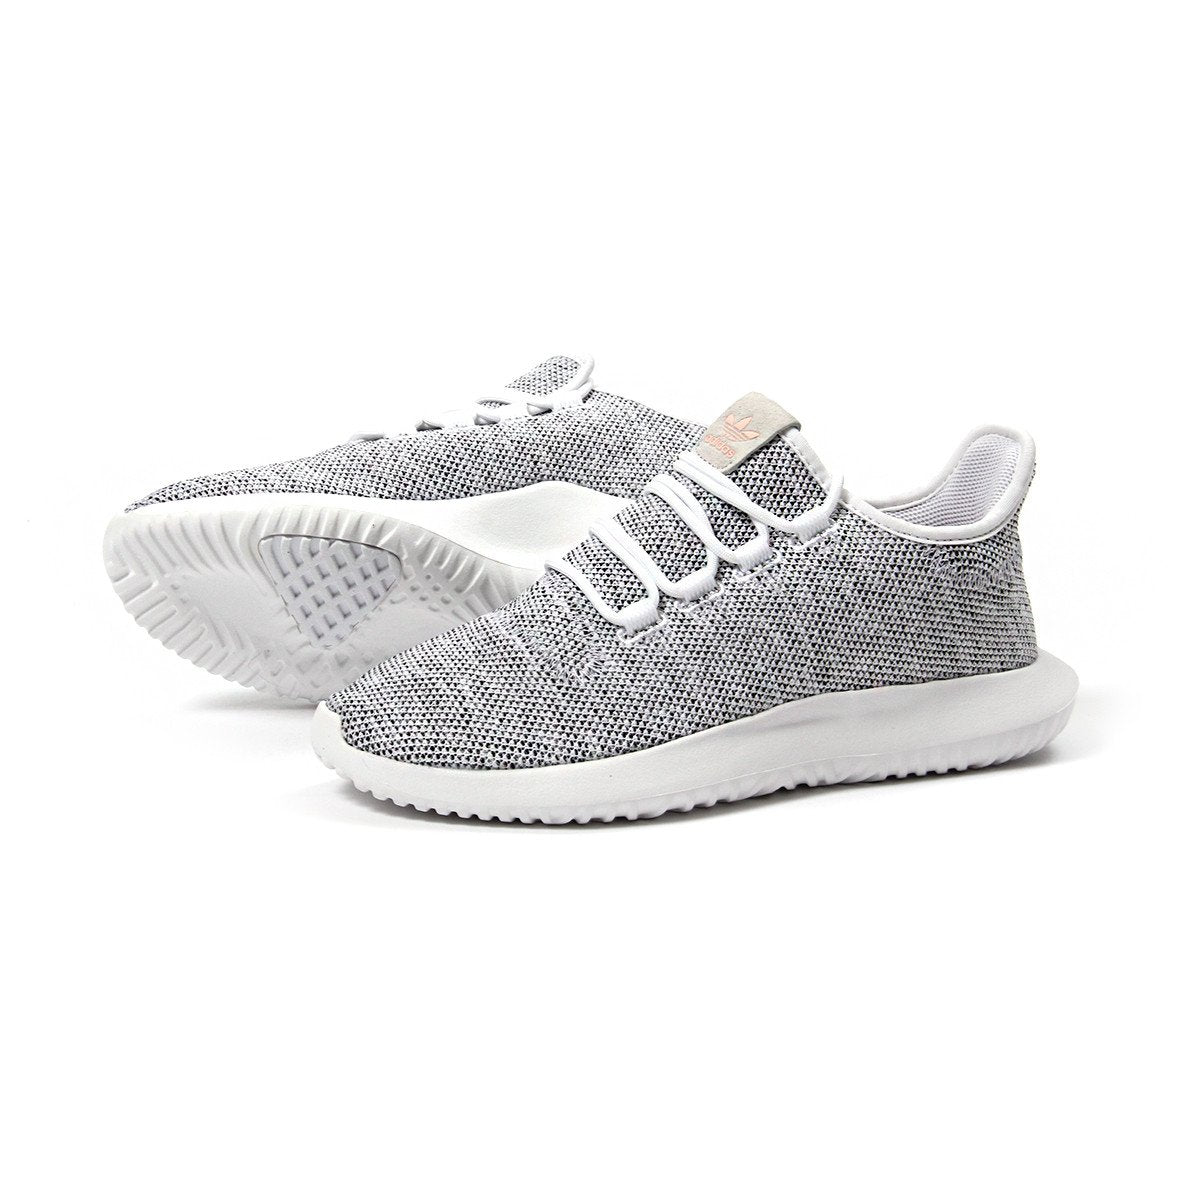 the latest 7879f 75bcd ConceptsIntl | adidas Women's Tubular Shadow (White/Grey)